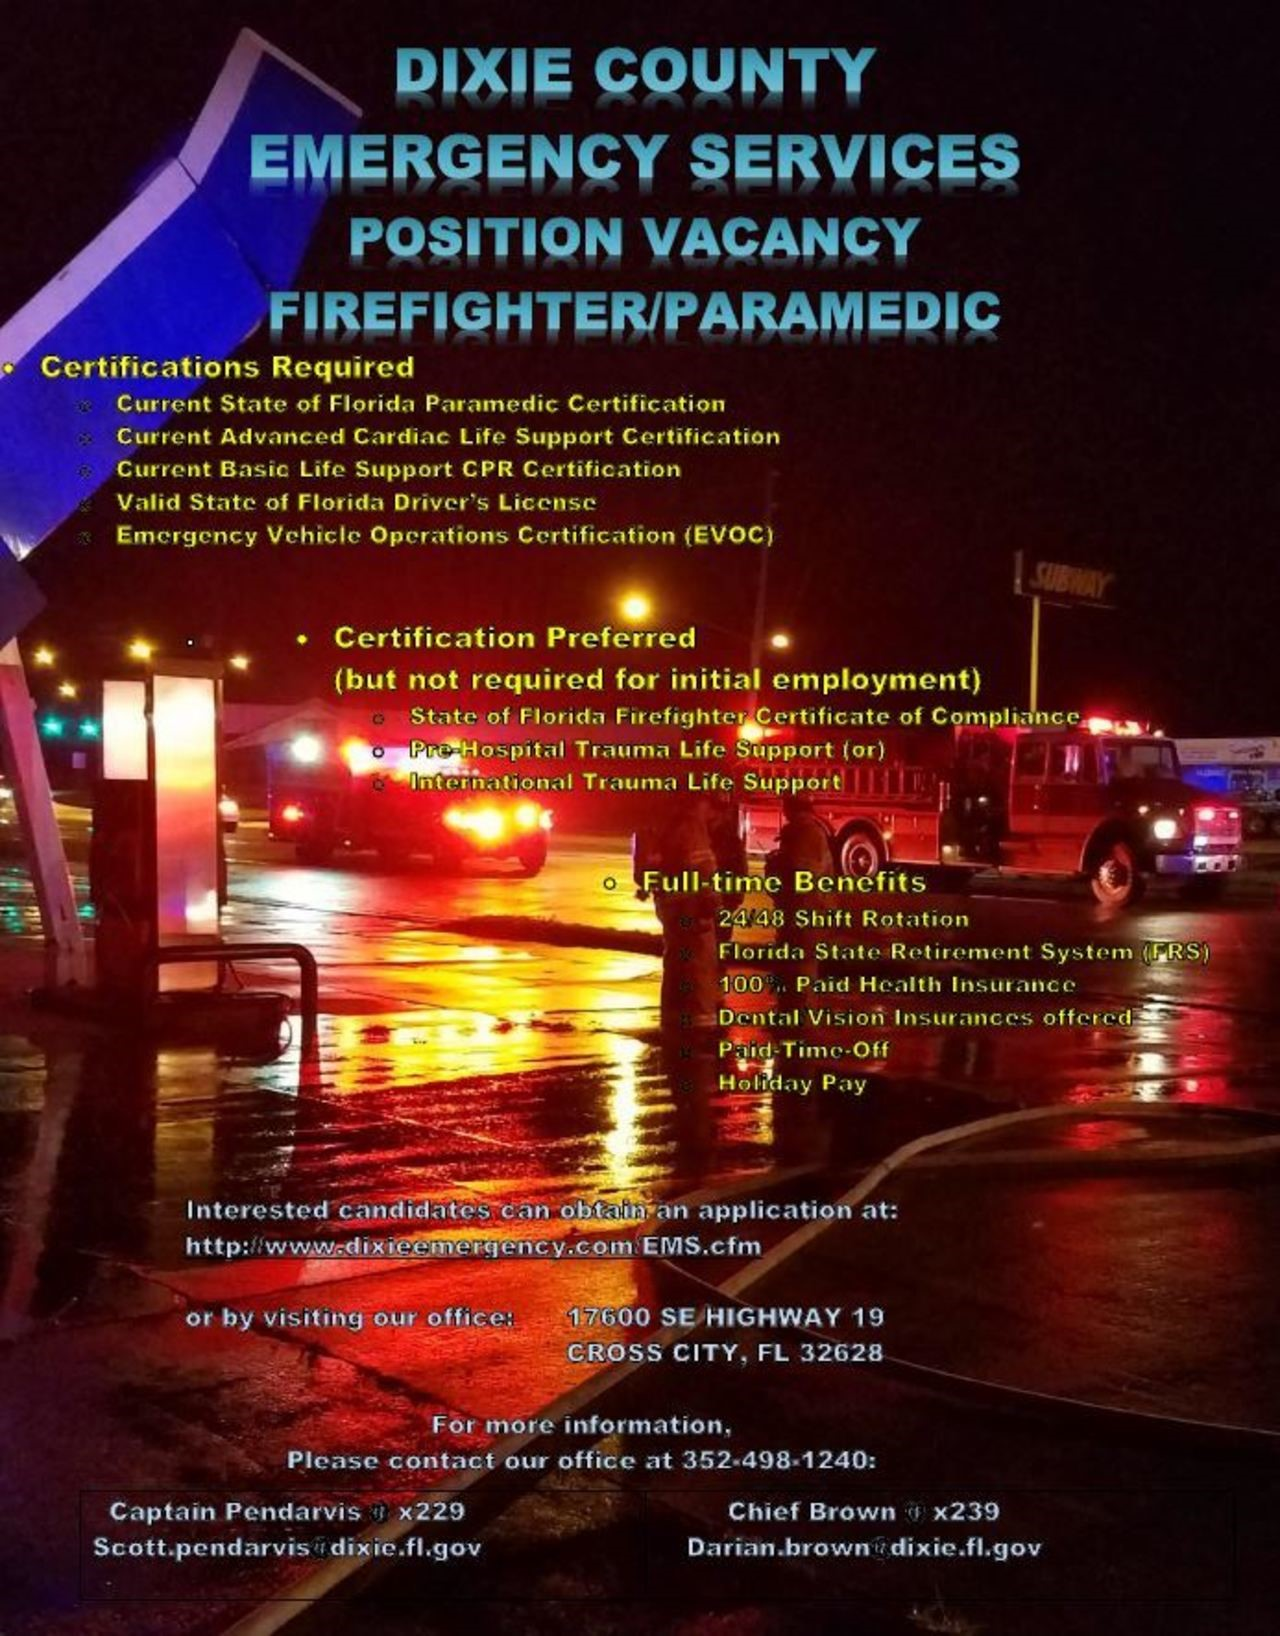 Dixie County Emergency Medical Services Hiring FF/Paramedic